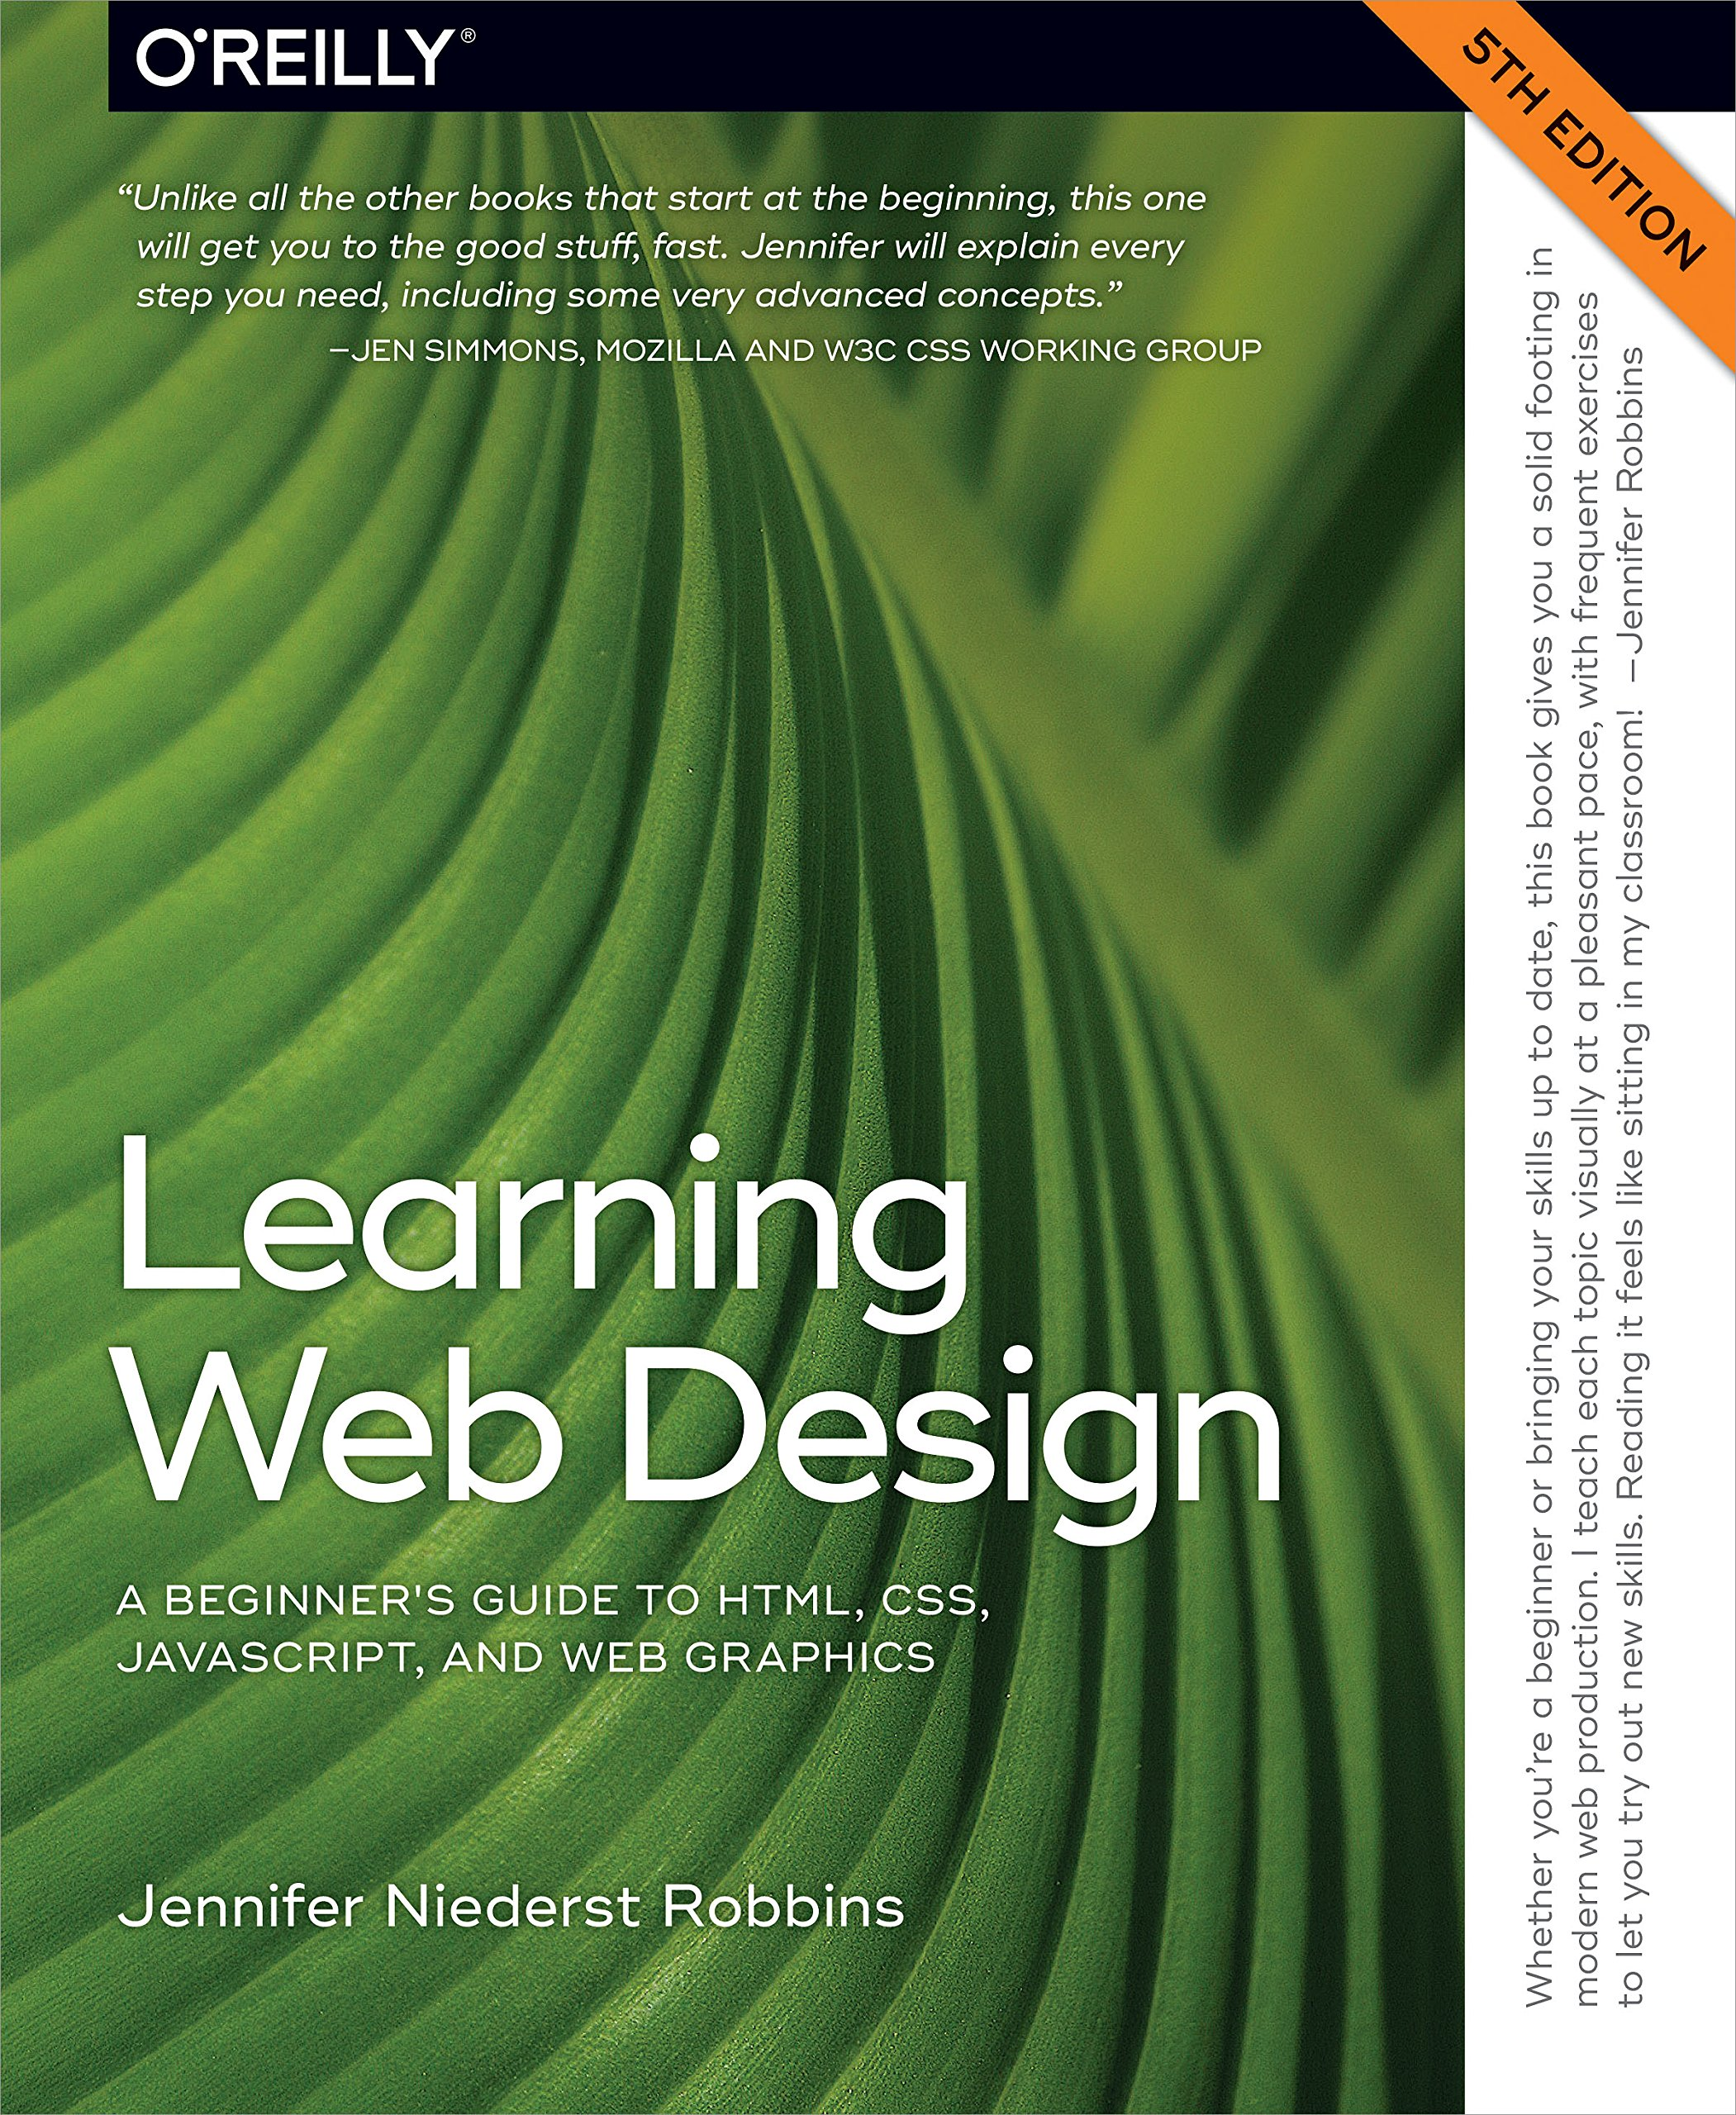 Amazon Com Learning Web Design A Beginner S Guide To Html Css Javascript And Web Graphics Ebook Robbins Jennifer Kindle Store